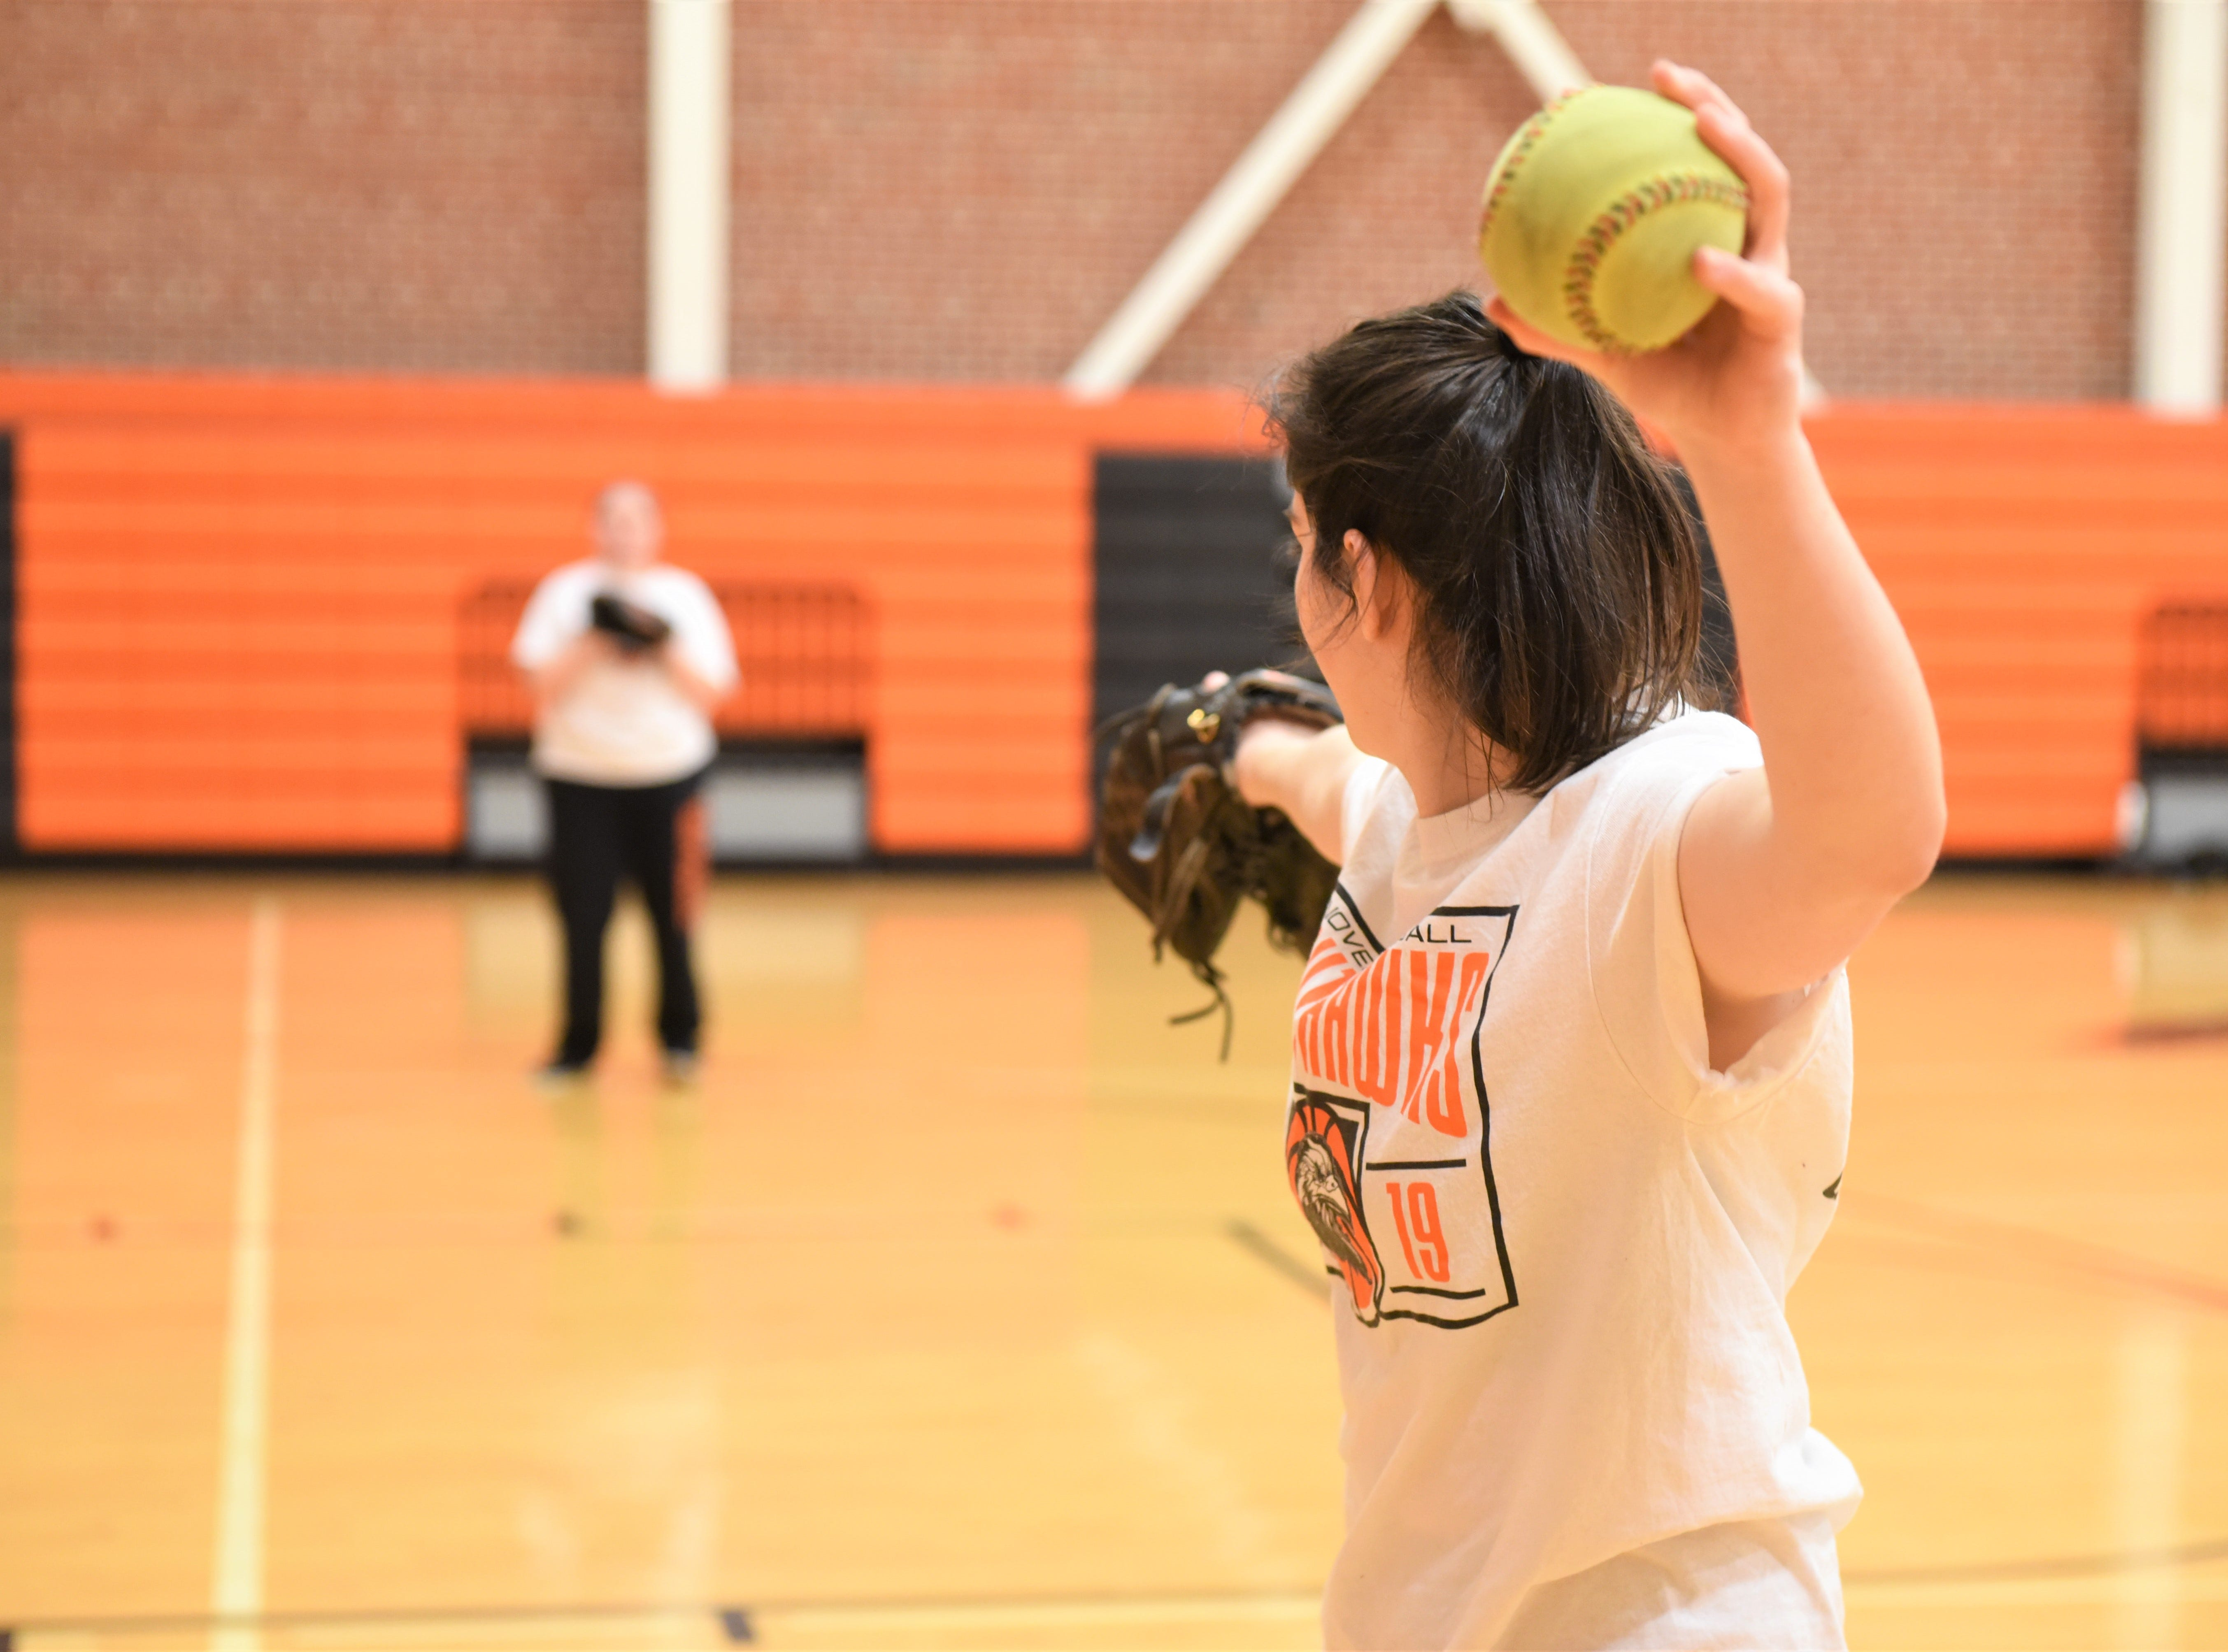 Hanover Senior High School softball team practices their throws and catches at the first practice of the spring sports season on March 4, 2019.